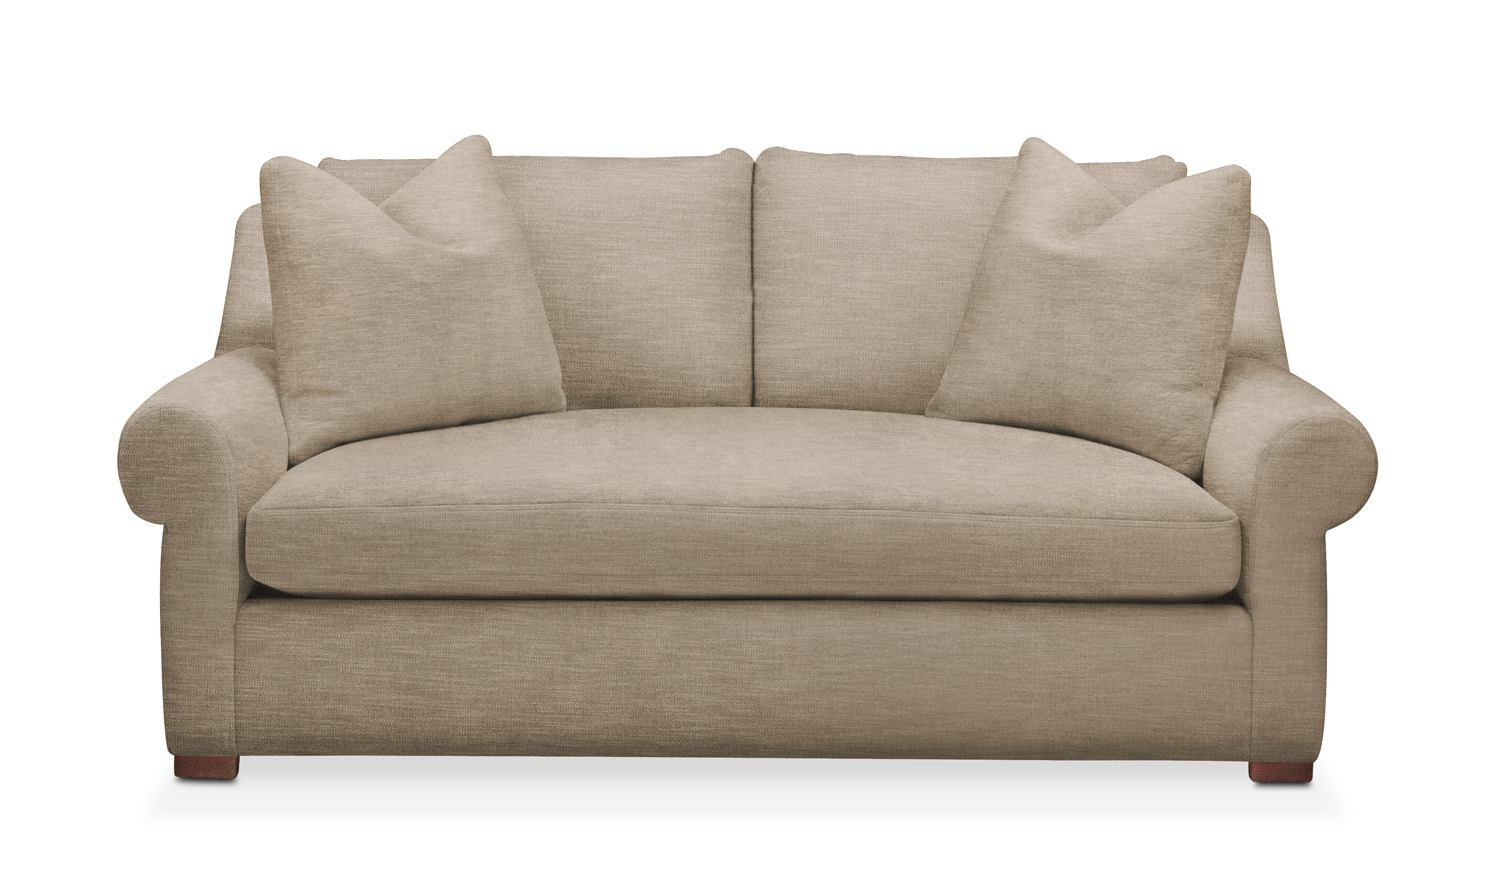 Attirant Asher Apartment Sofa  Cumulus In Dudley Burlap By Kroehler